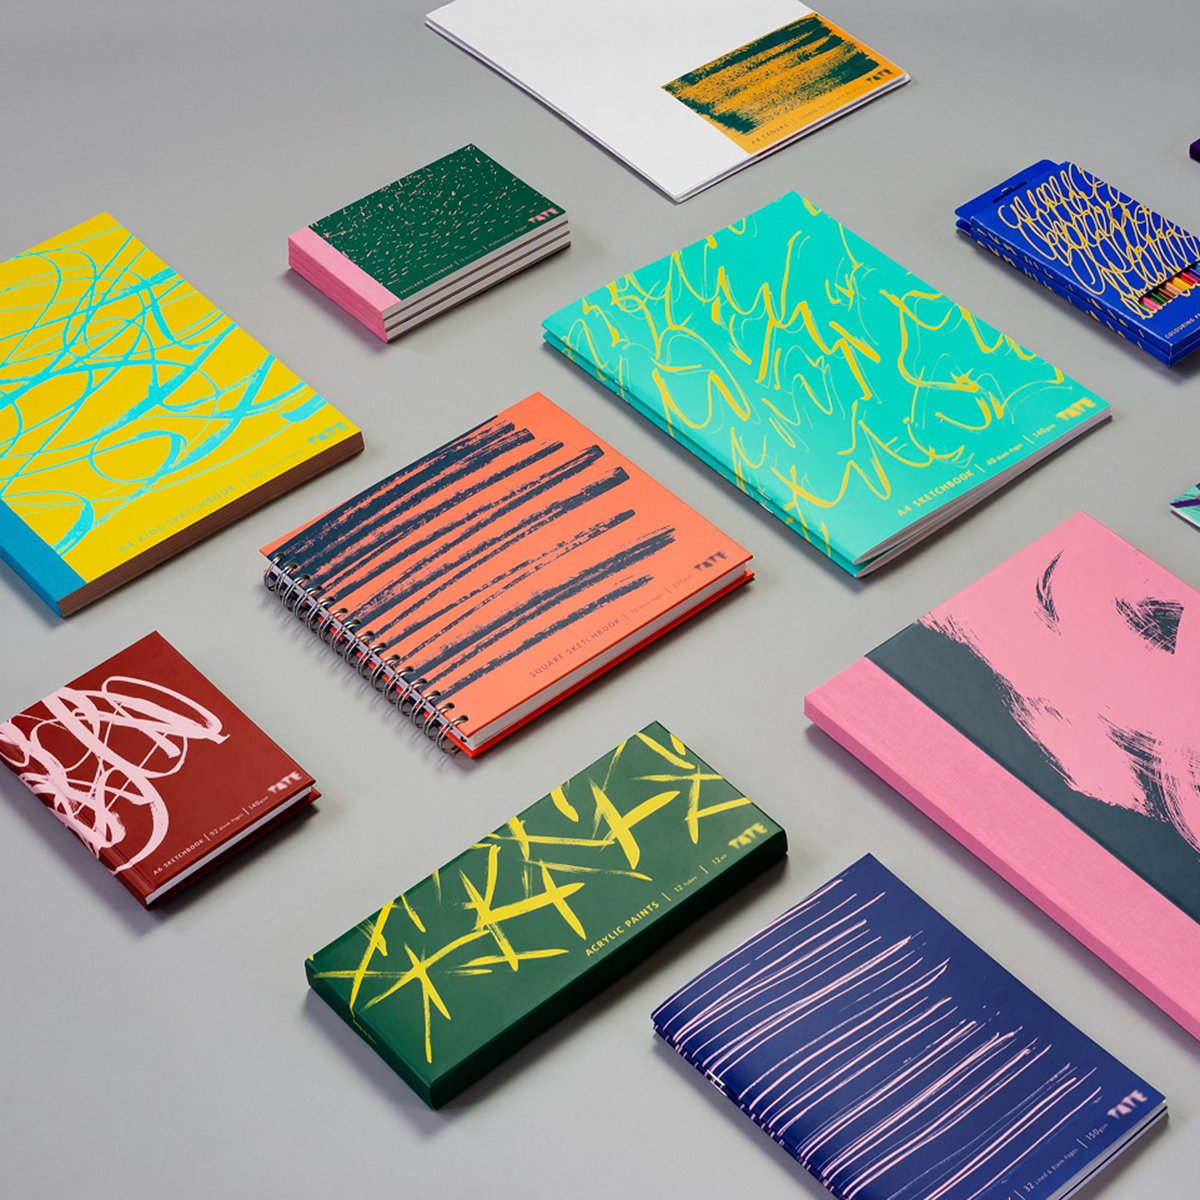 Here Design Creates New Gift Range for the Tate